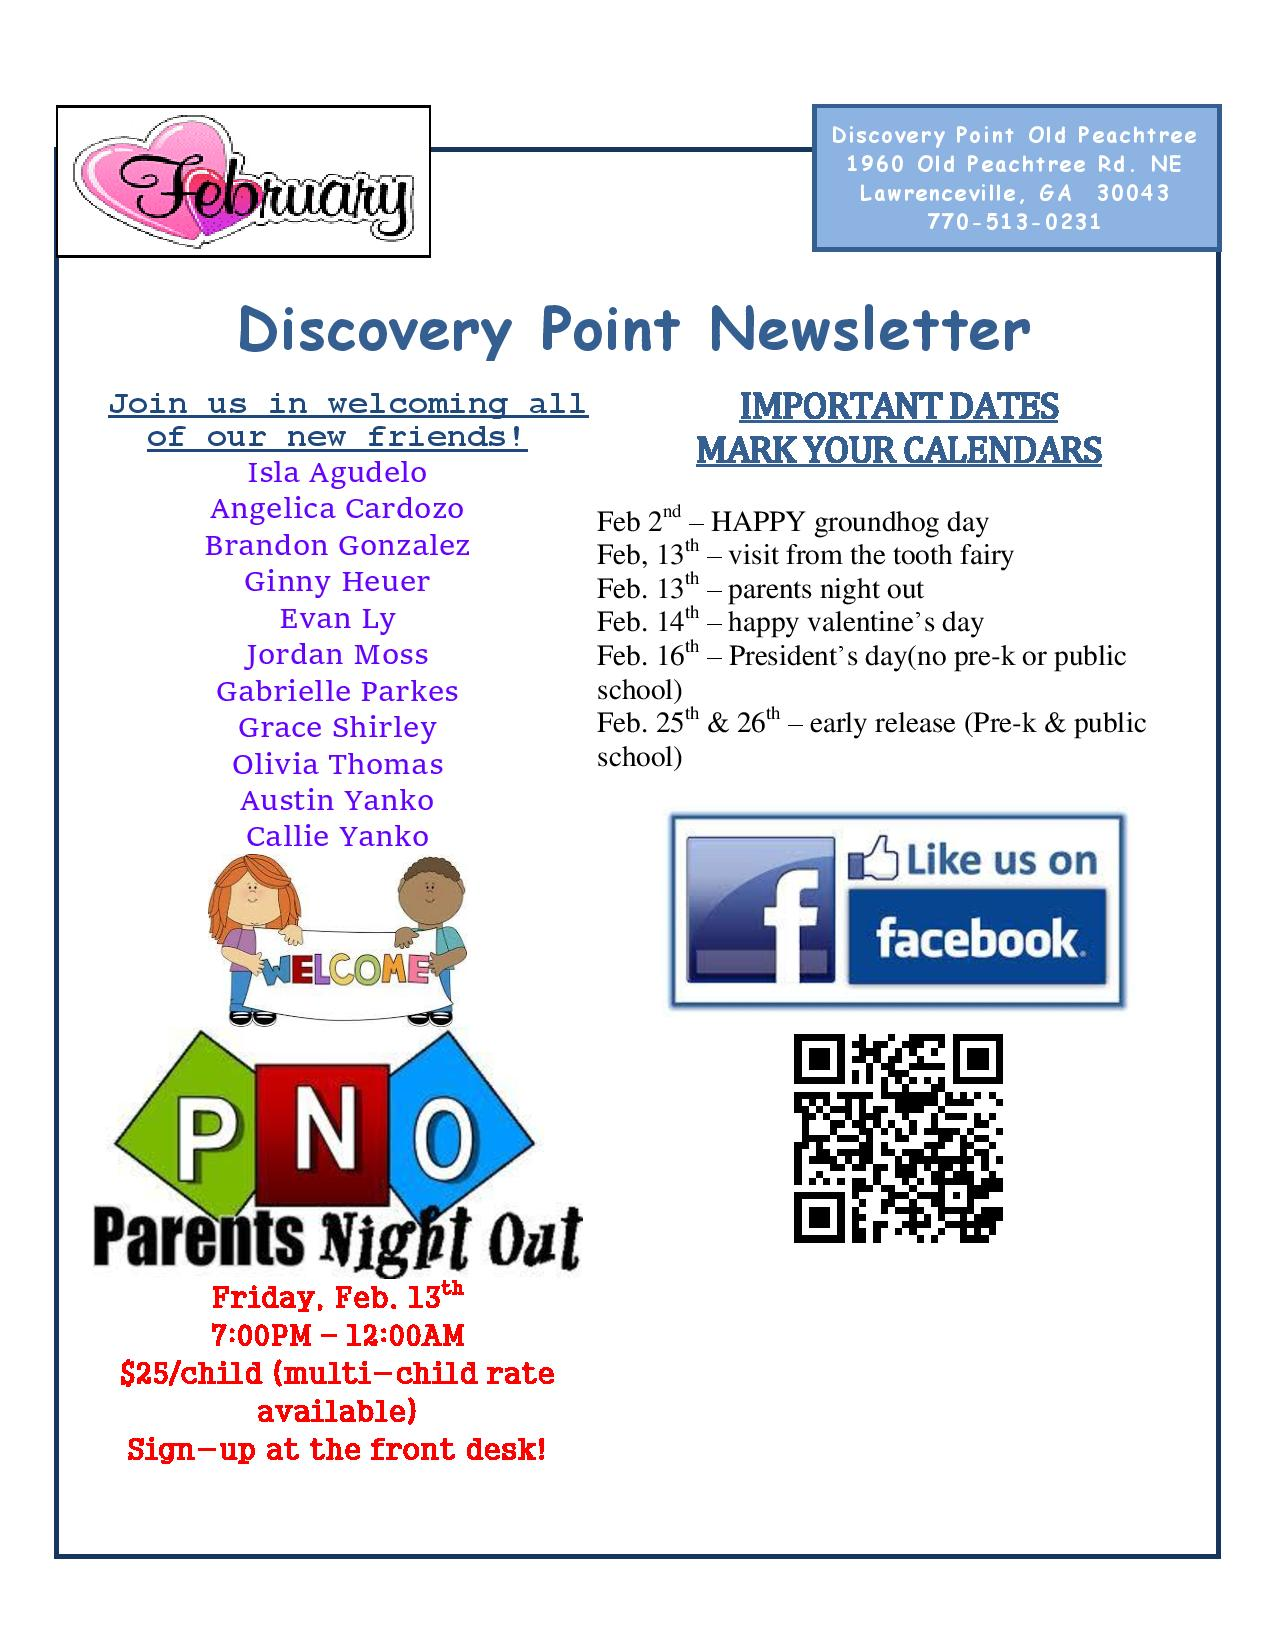 Discovery Point Old Peachtree February 2015 Newsletter Page 1